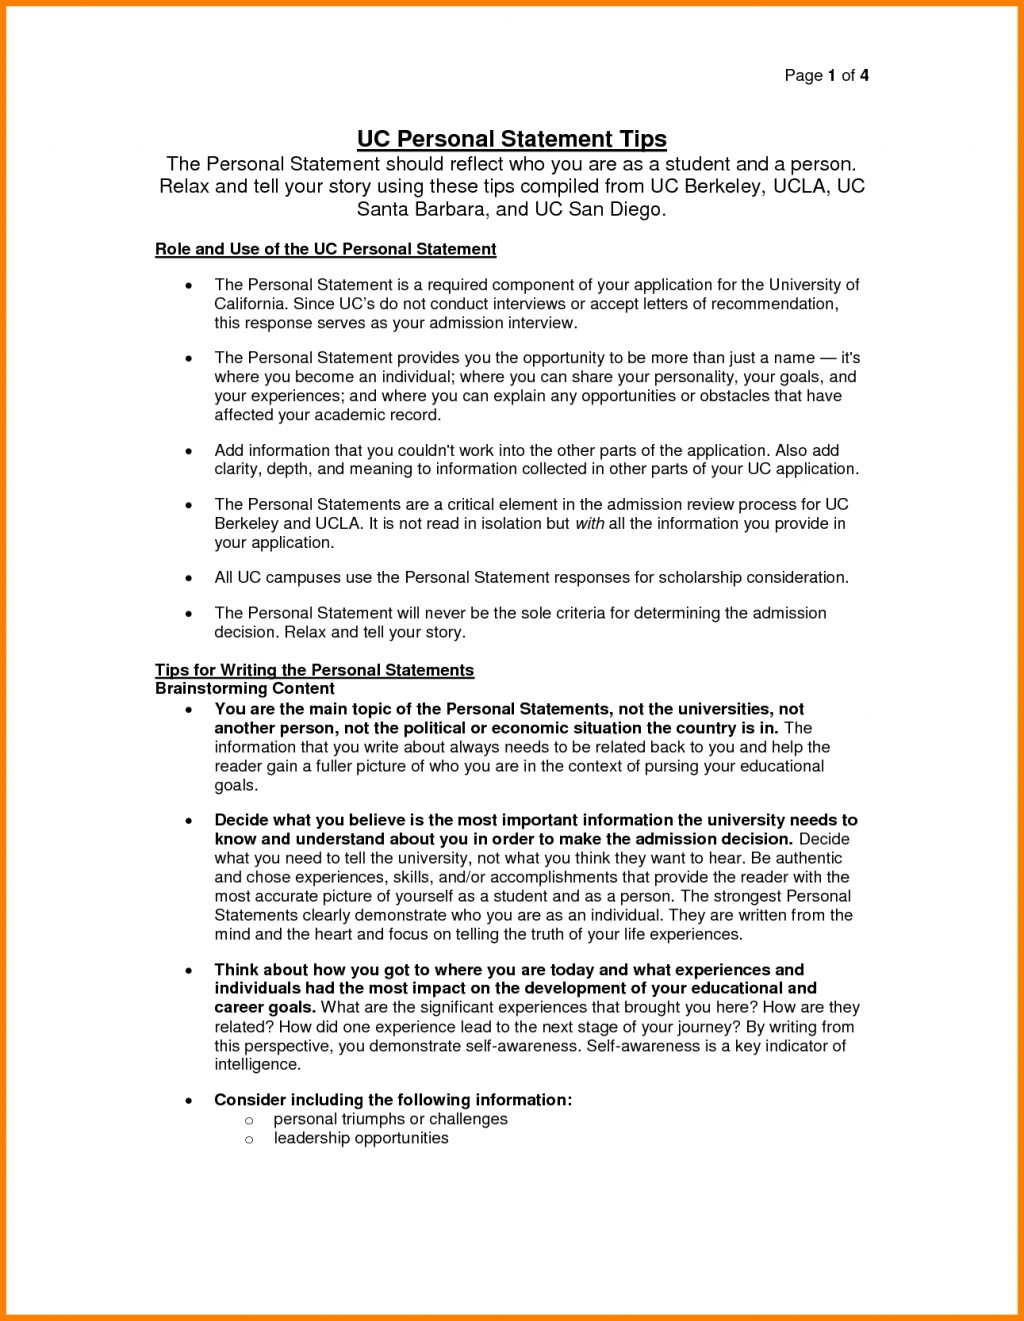 003 Uc Essay Example Essays Examples Best Personal Statement Samples Berkeley Intended For College Prompts Awful Tips 2018 Reddit Large